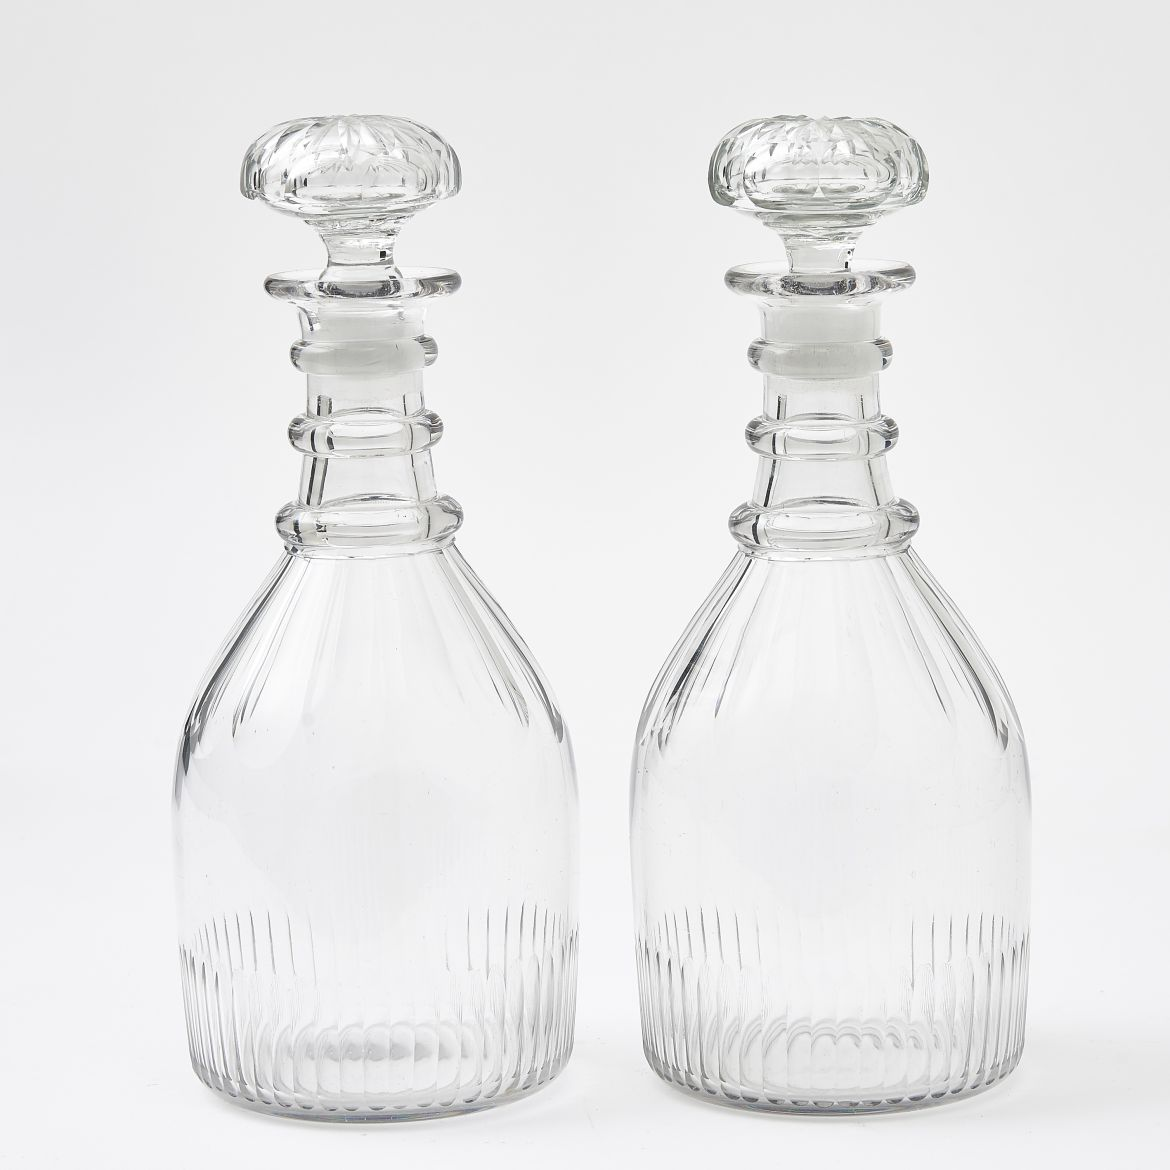 Pair of Regency Crystal Decanters